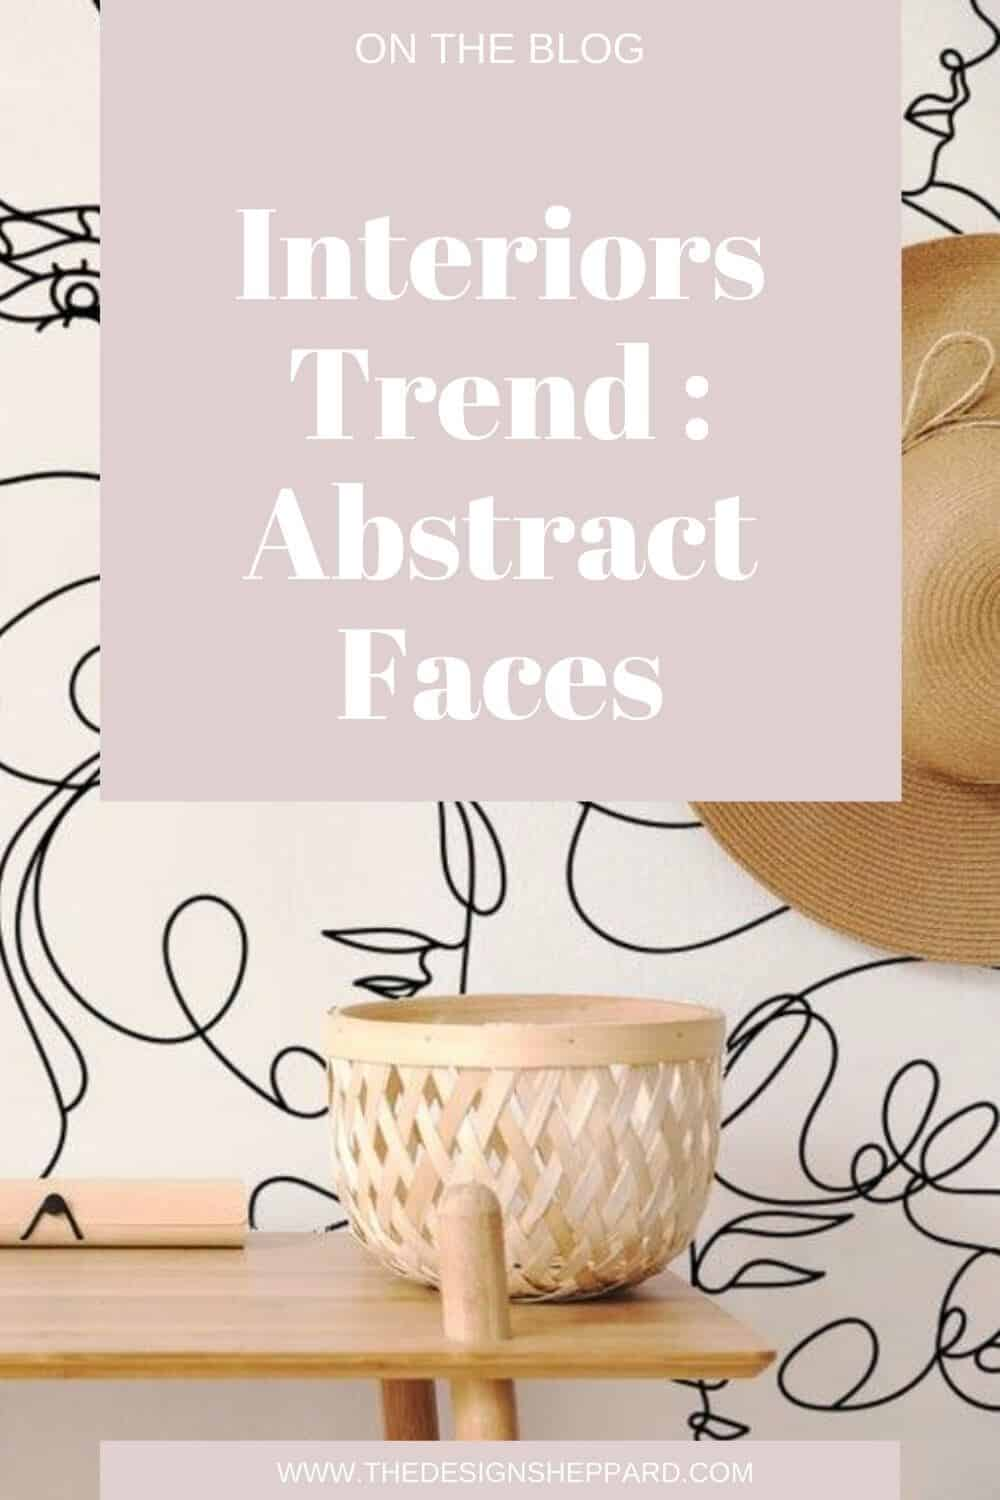 Abstract faces interior trend.